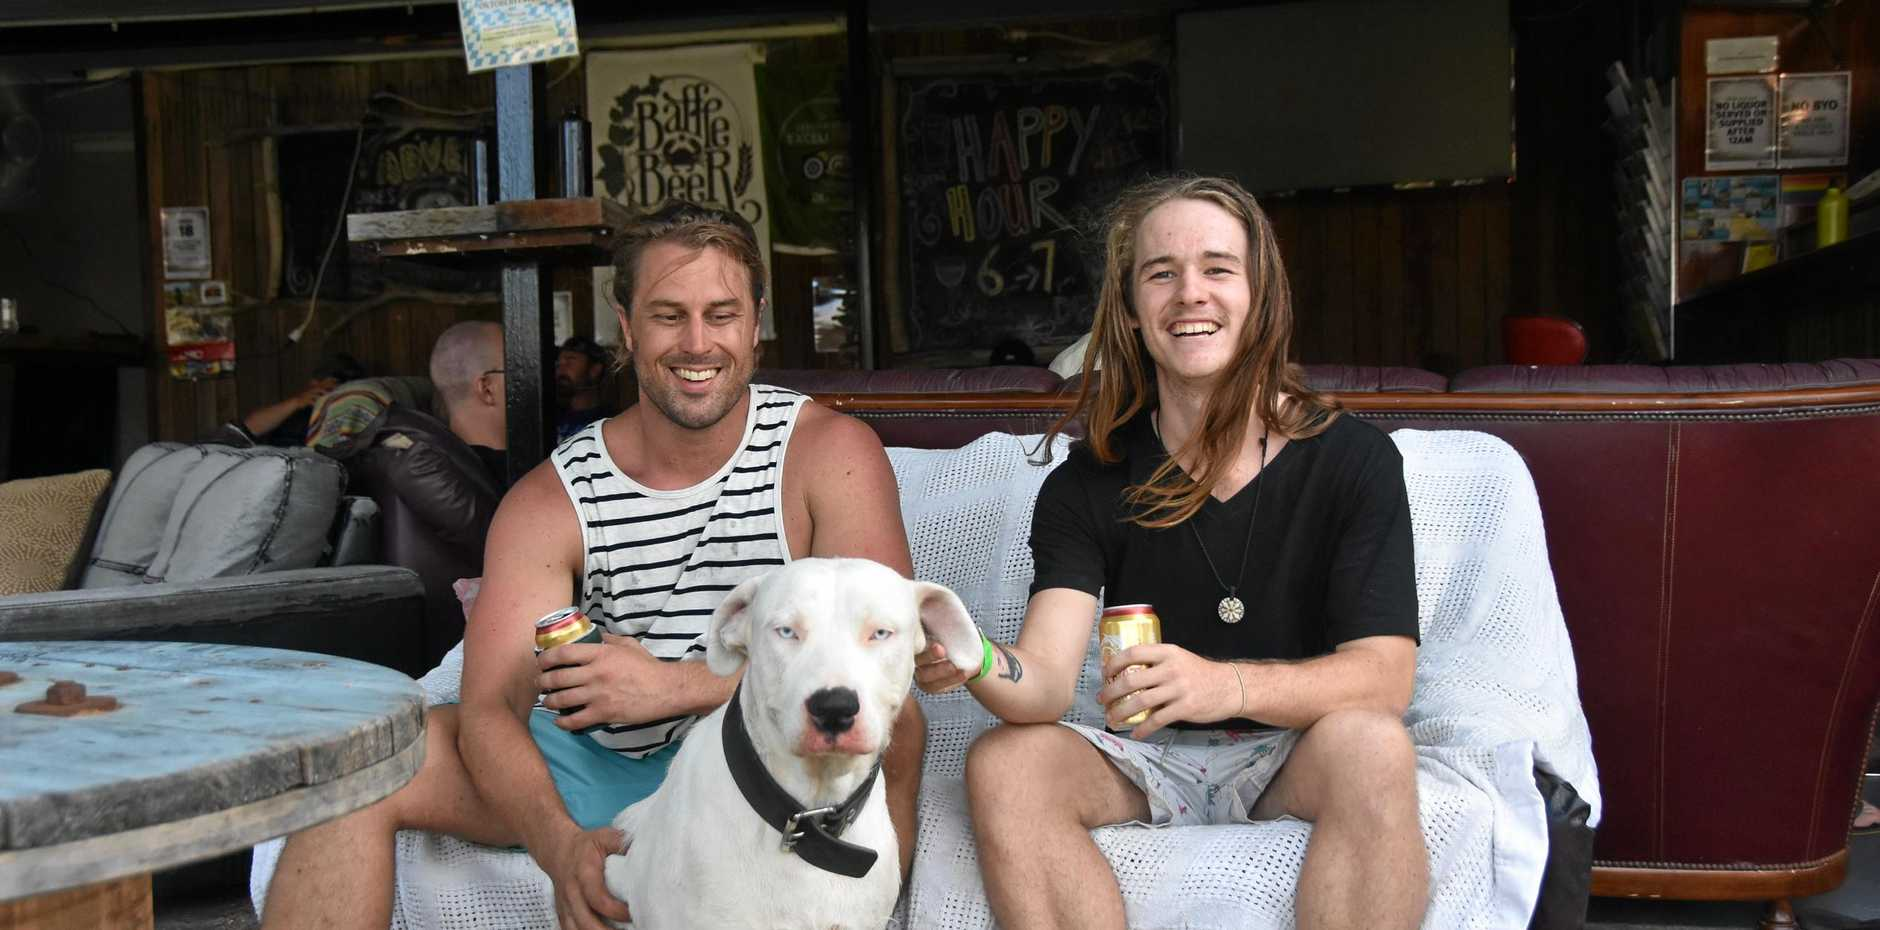 FRIENDLY VIBES: Gladstone Backpackers owner Luke McClelland and event manager Callan Reah and Luke's dog Charlie at Charlie's Bar. Visit the Gladstone Backpackers Facebook page for information about upcoming events.